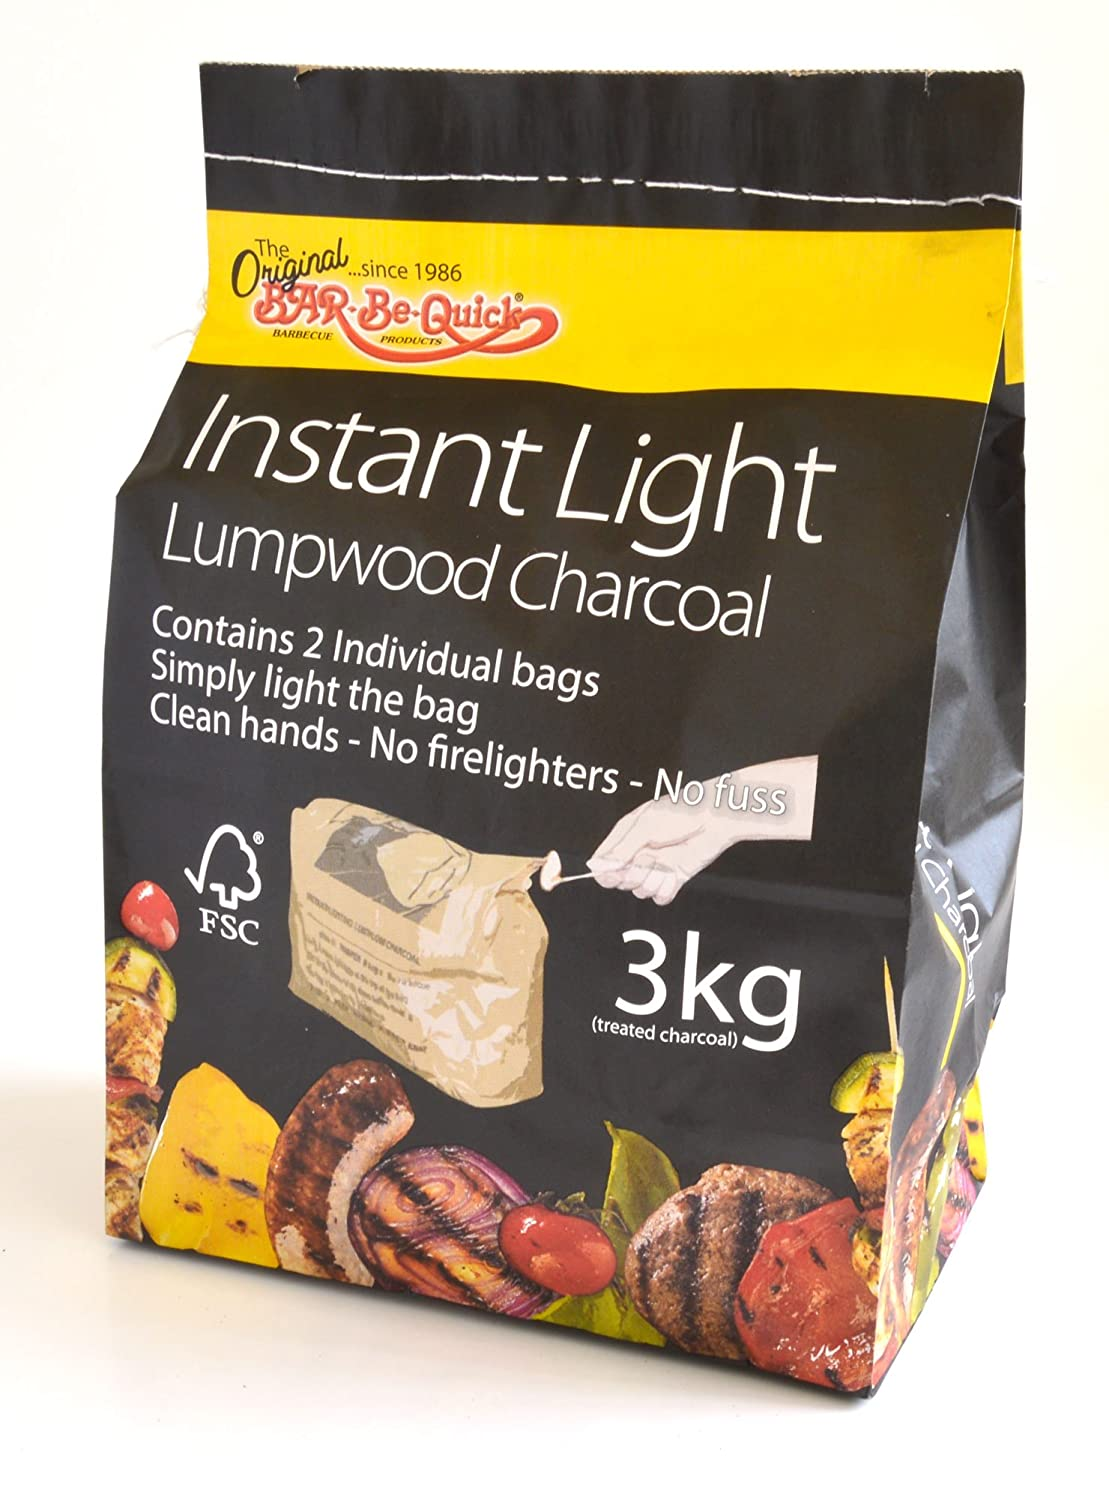 BAR-BE-QUICK Instant Light Charcoal 3KG Proteam